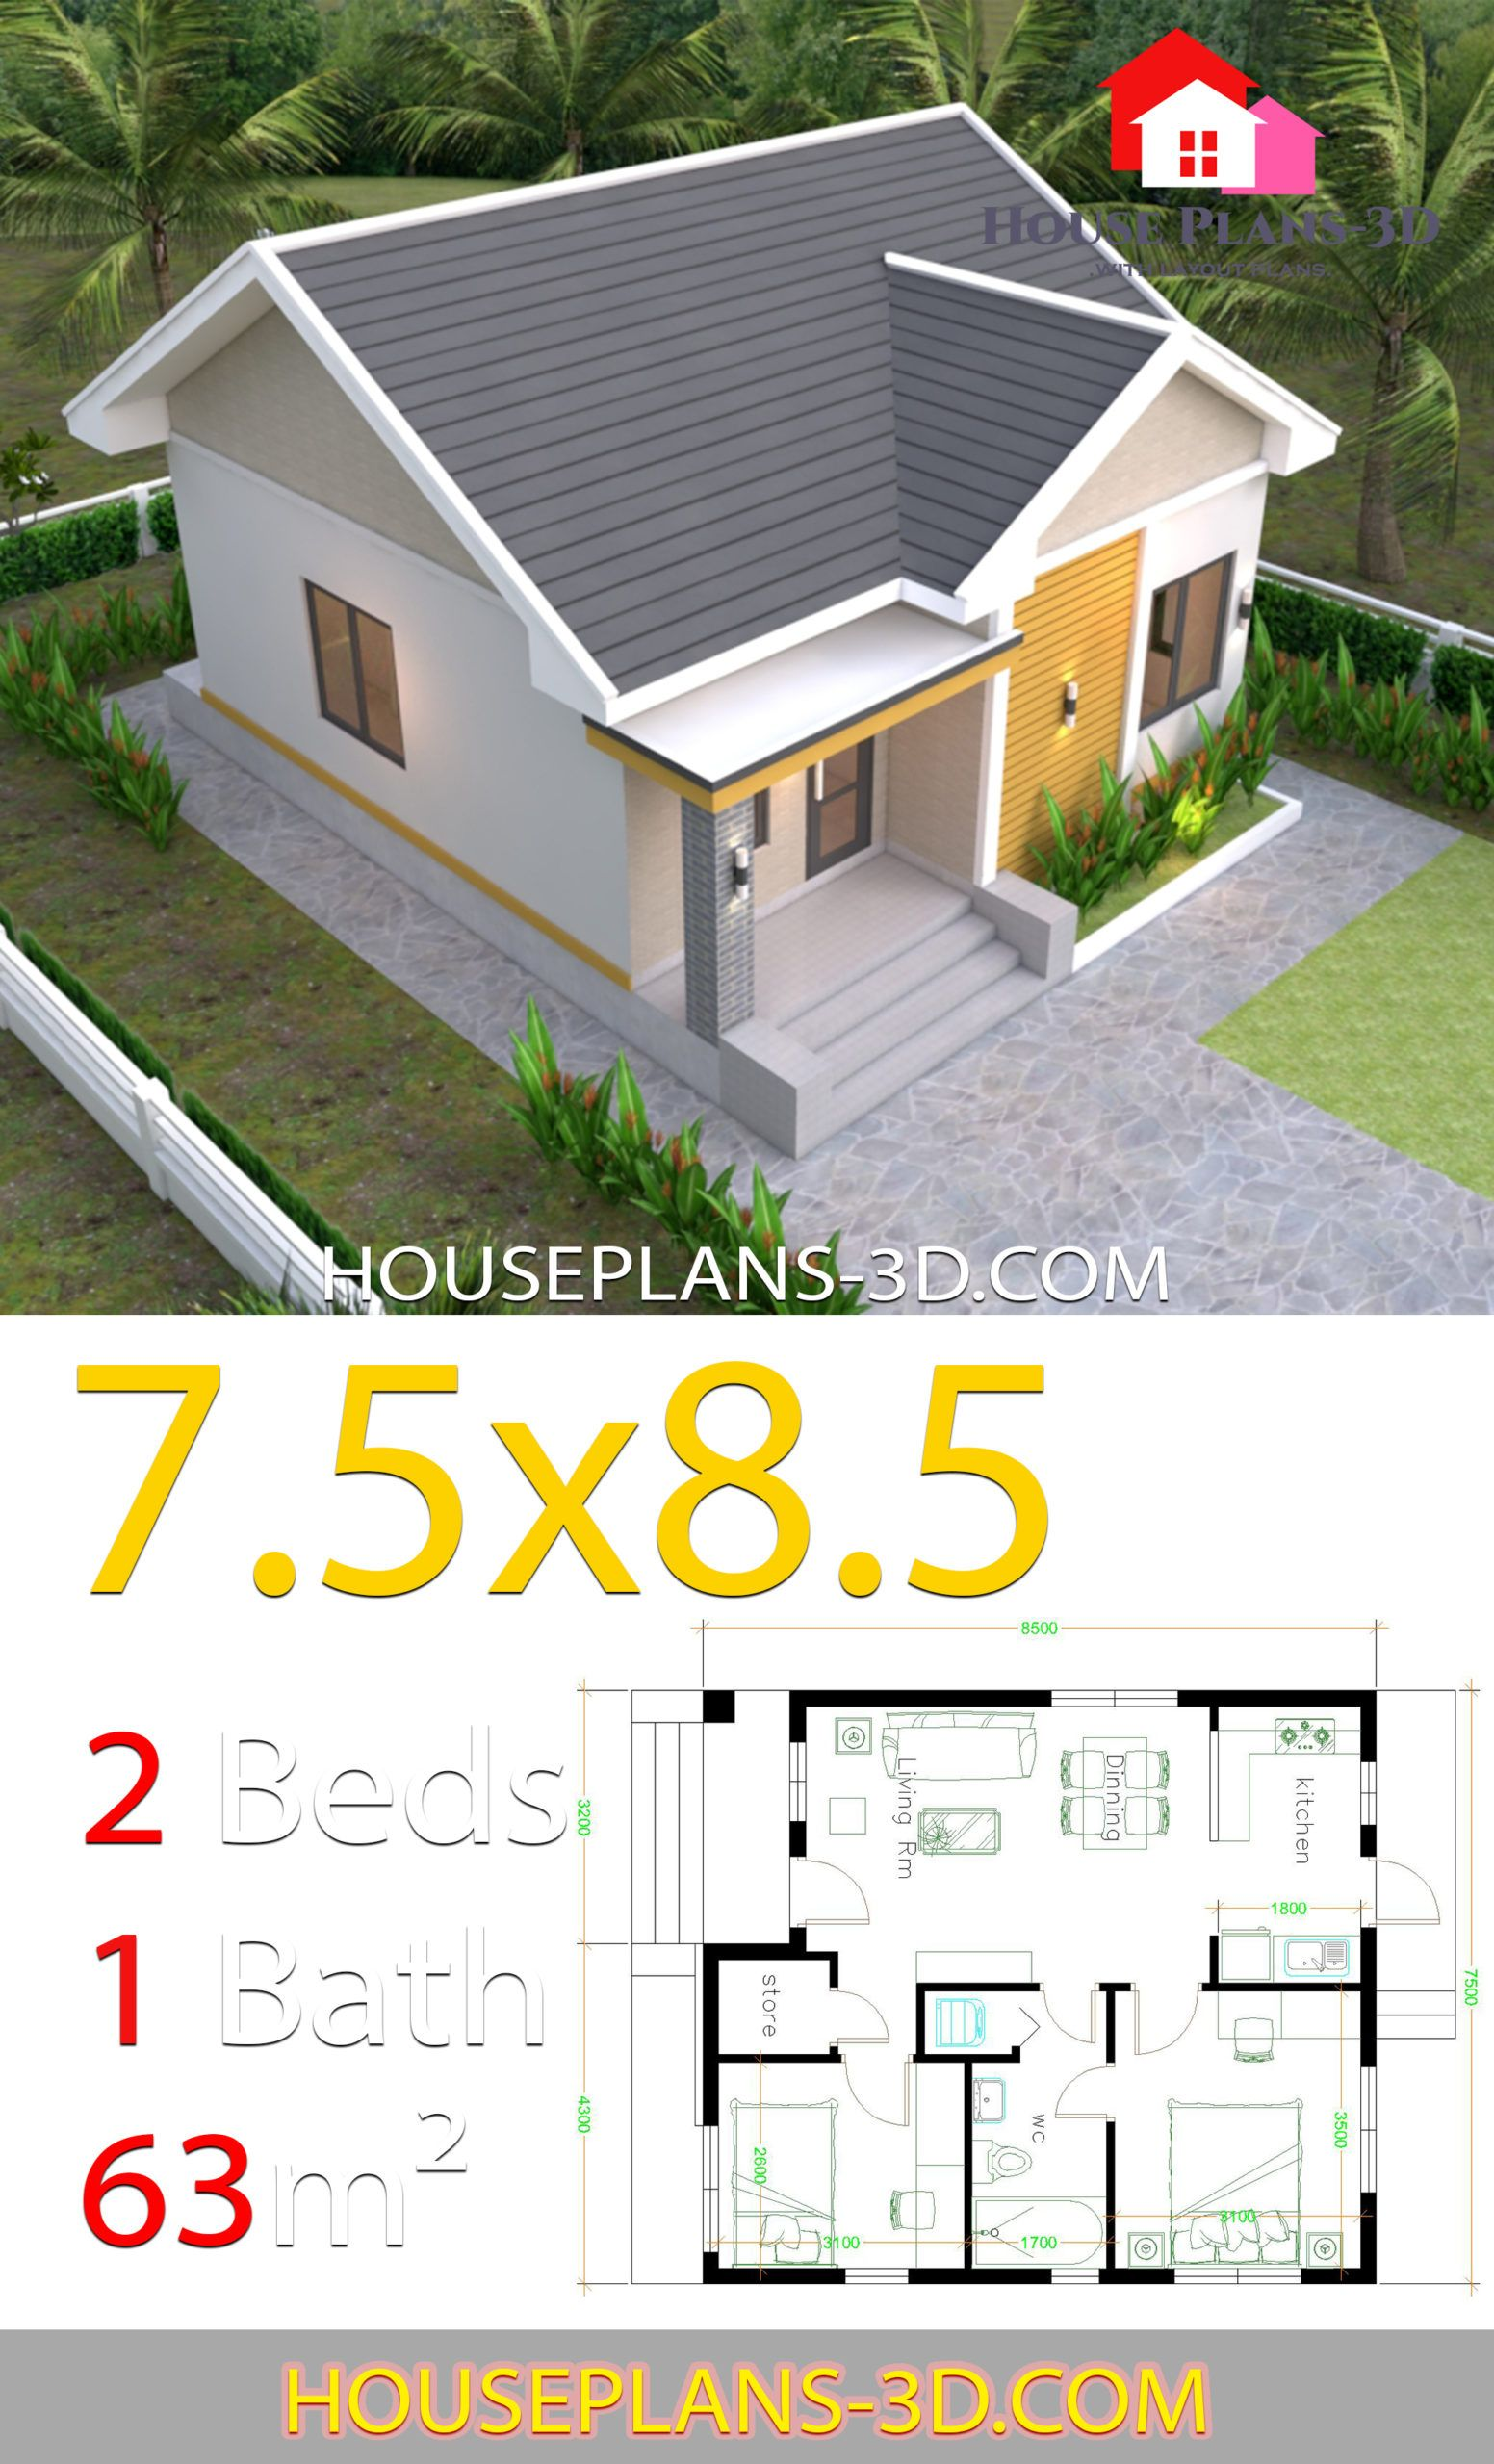 House Plans 7 5x8 5m With 2 Bedrooms Gable Roof House Plans 3d House Construction Plan House Plan Gallery Architectural House Plans